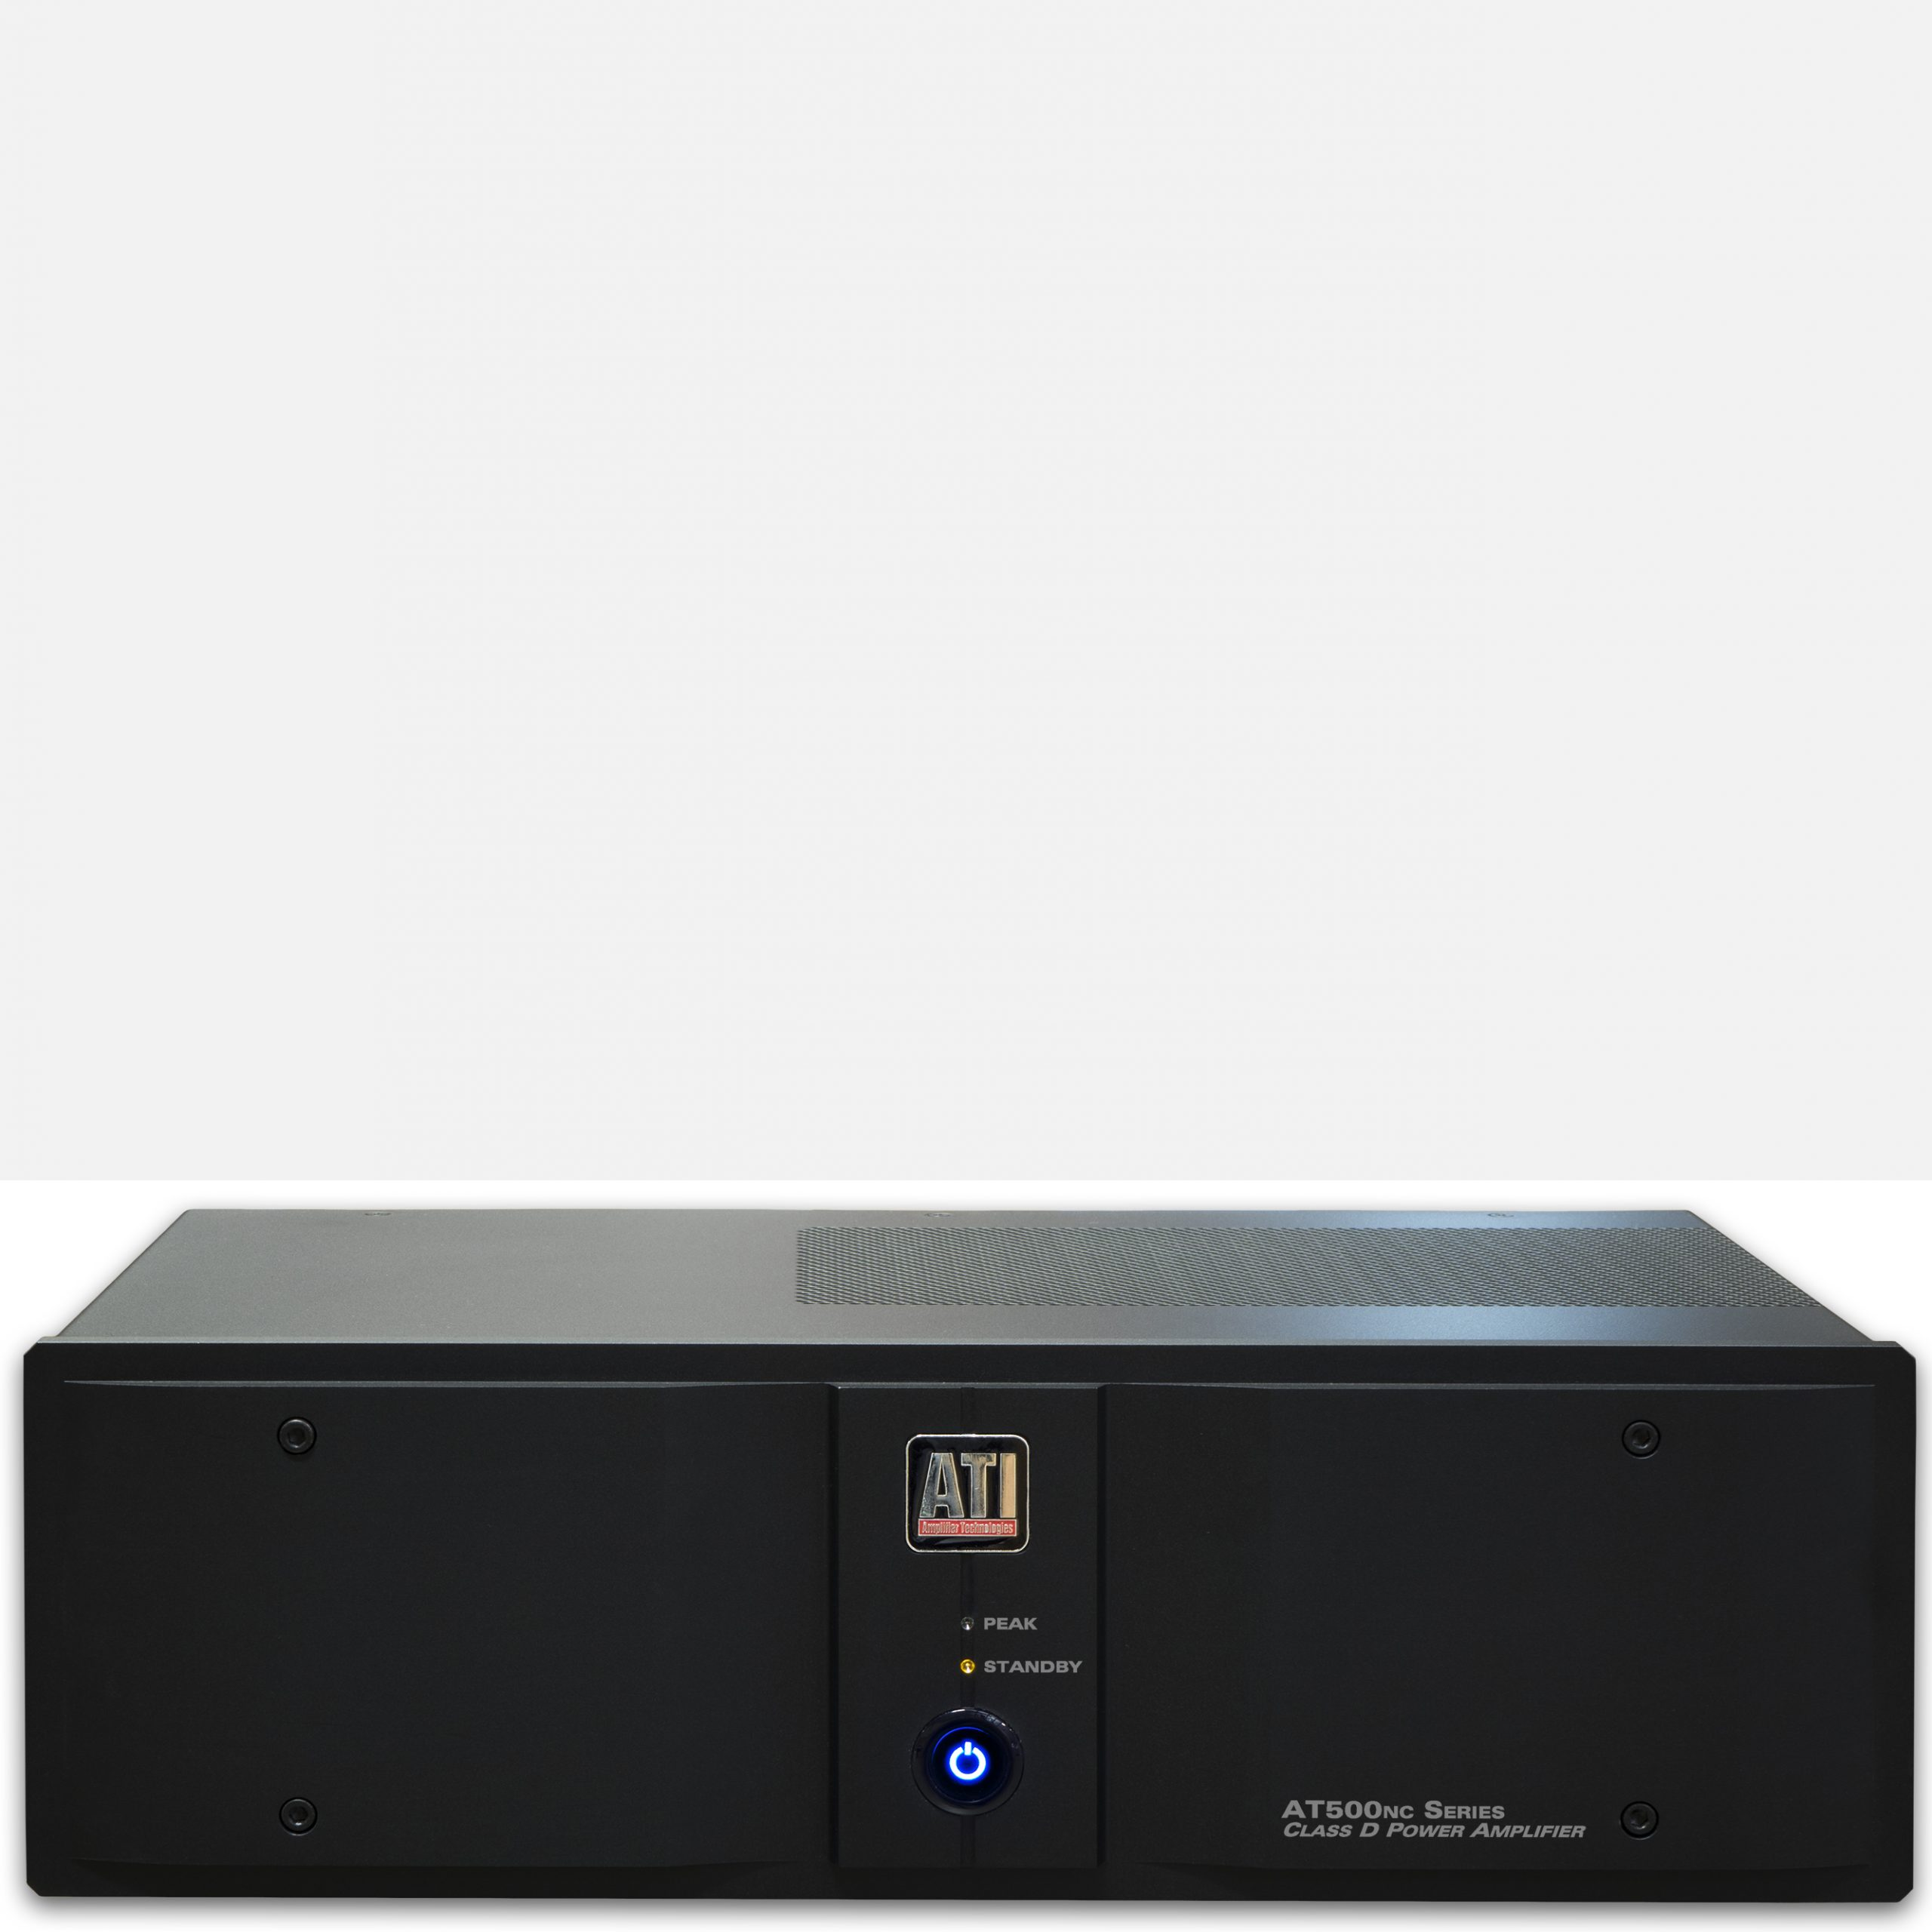 ATI AT52x NCore Series Power Amplifiers